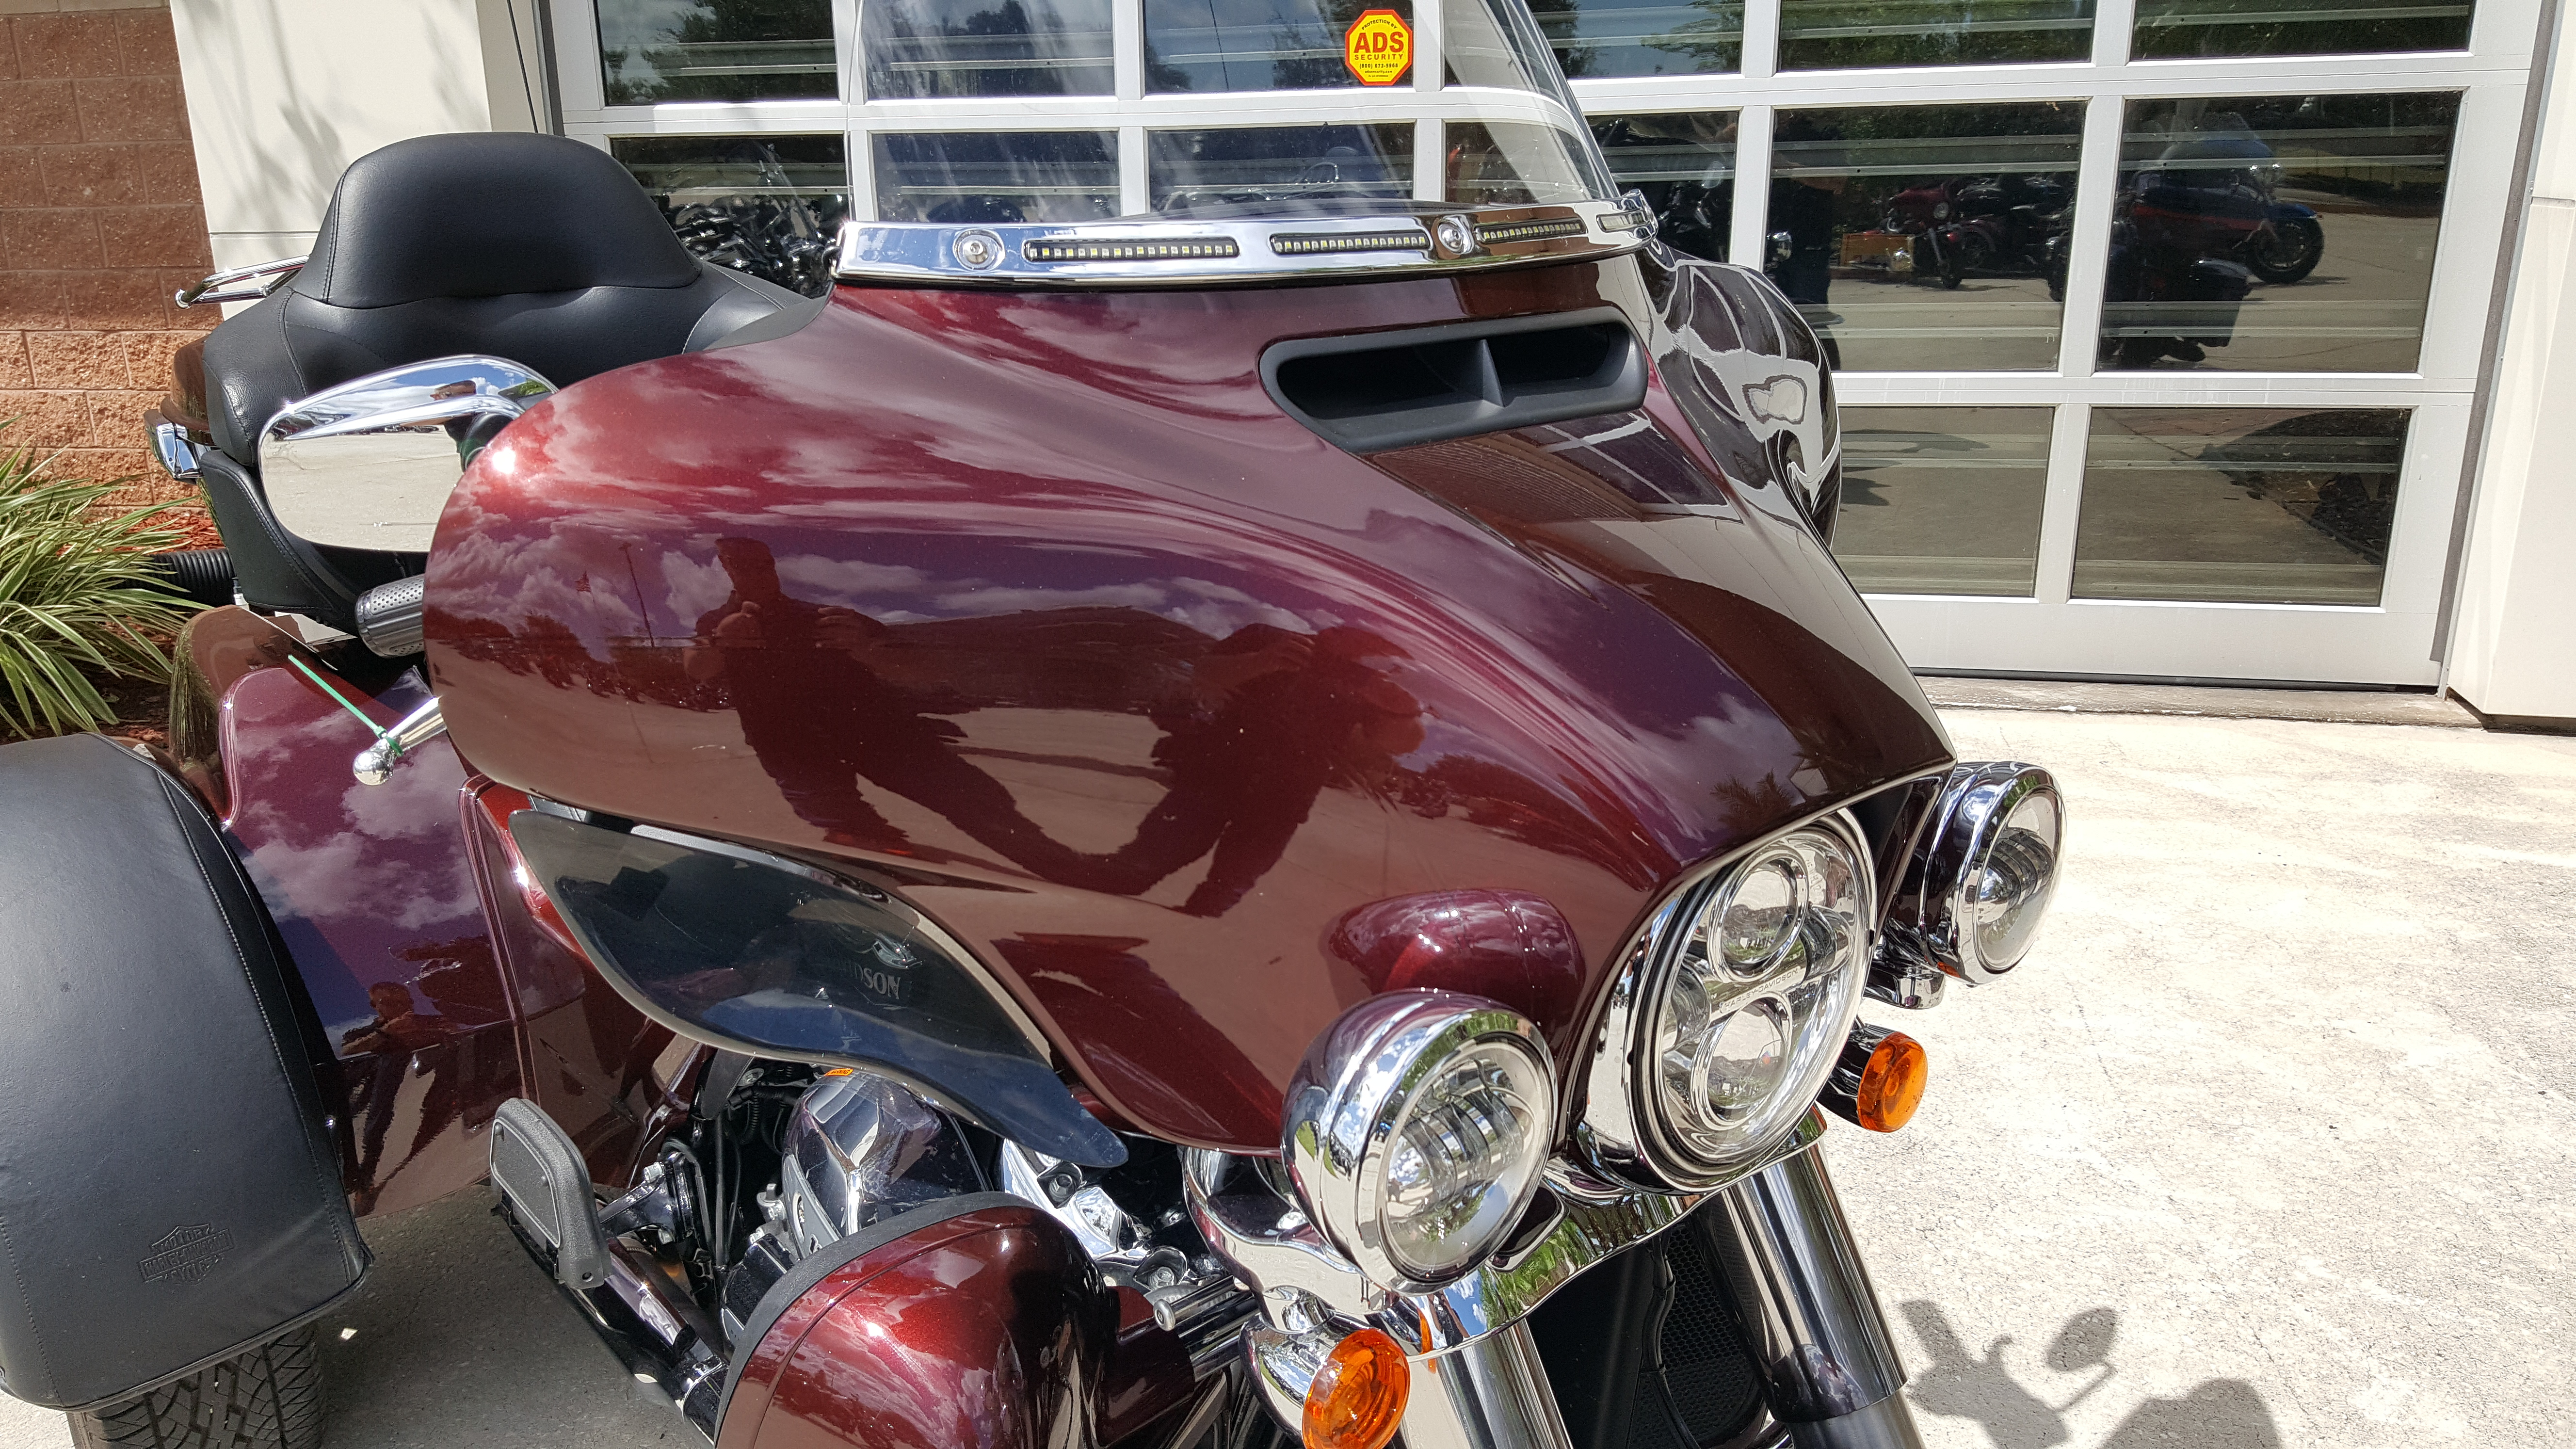 Pre-Owned 2019 Harley-Davidson Tri Glide Ultra Classic